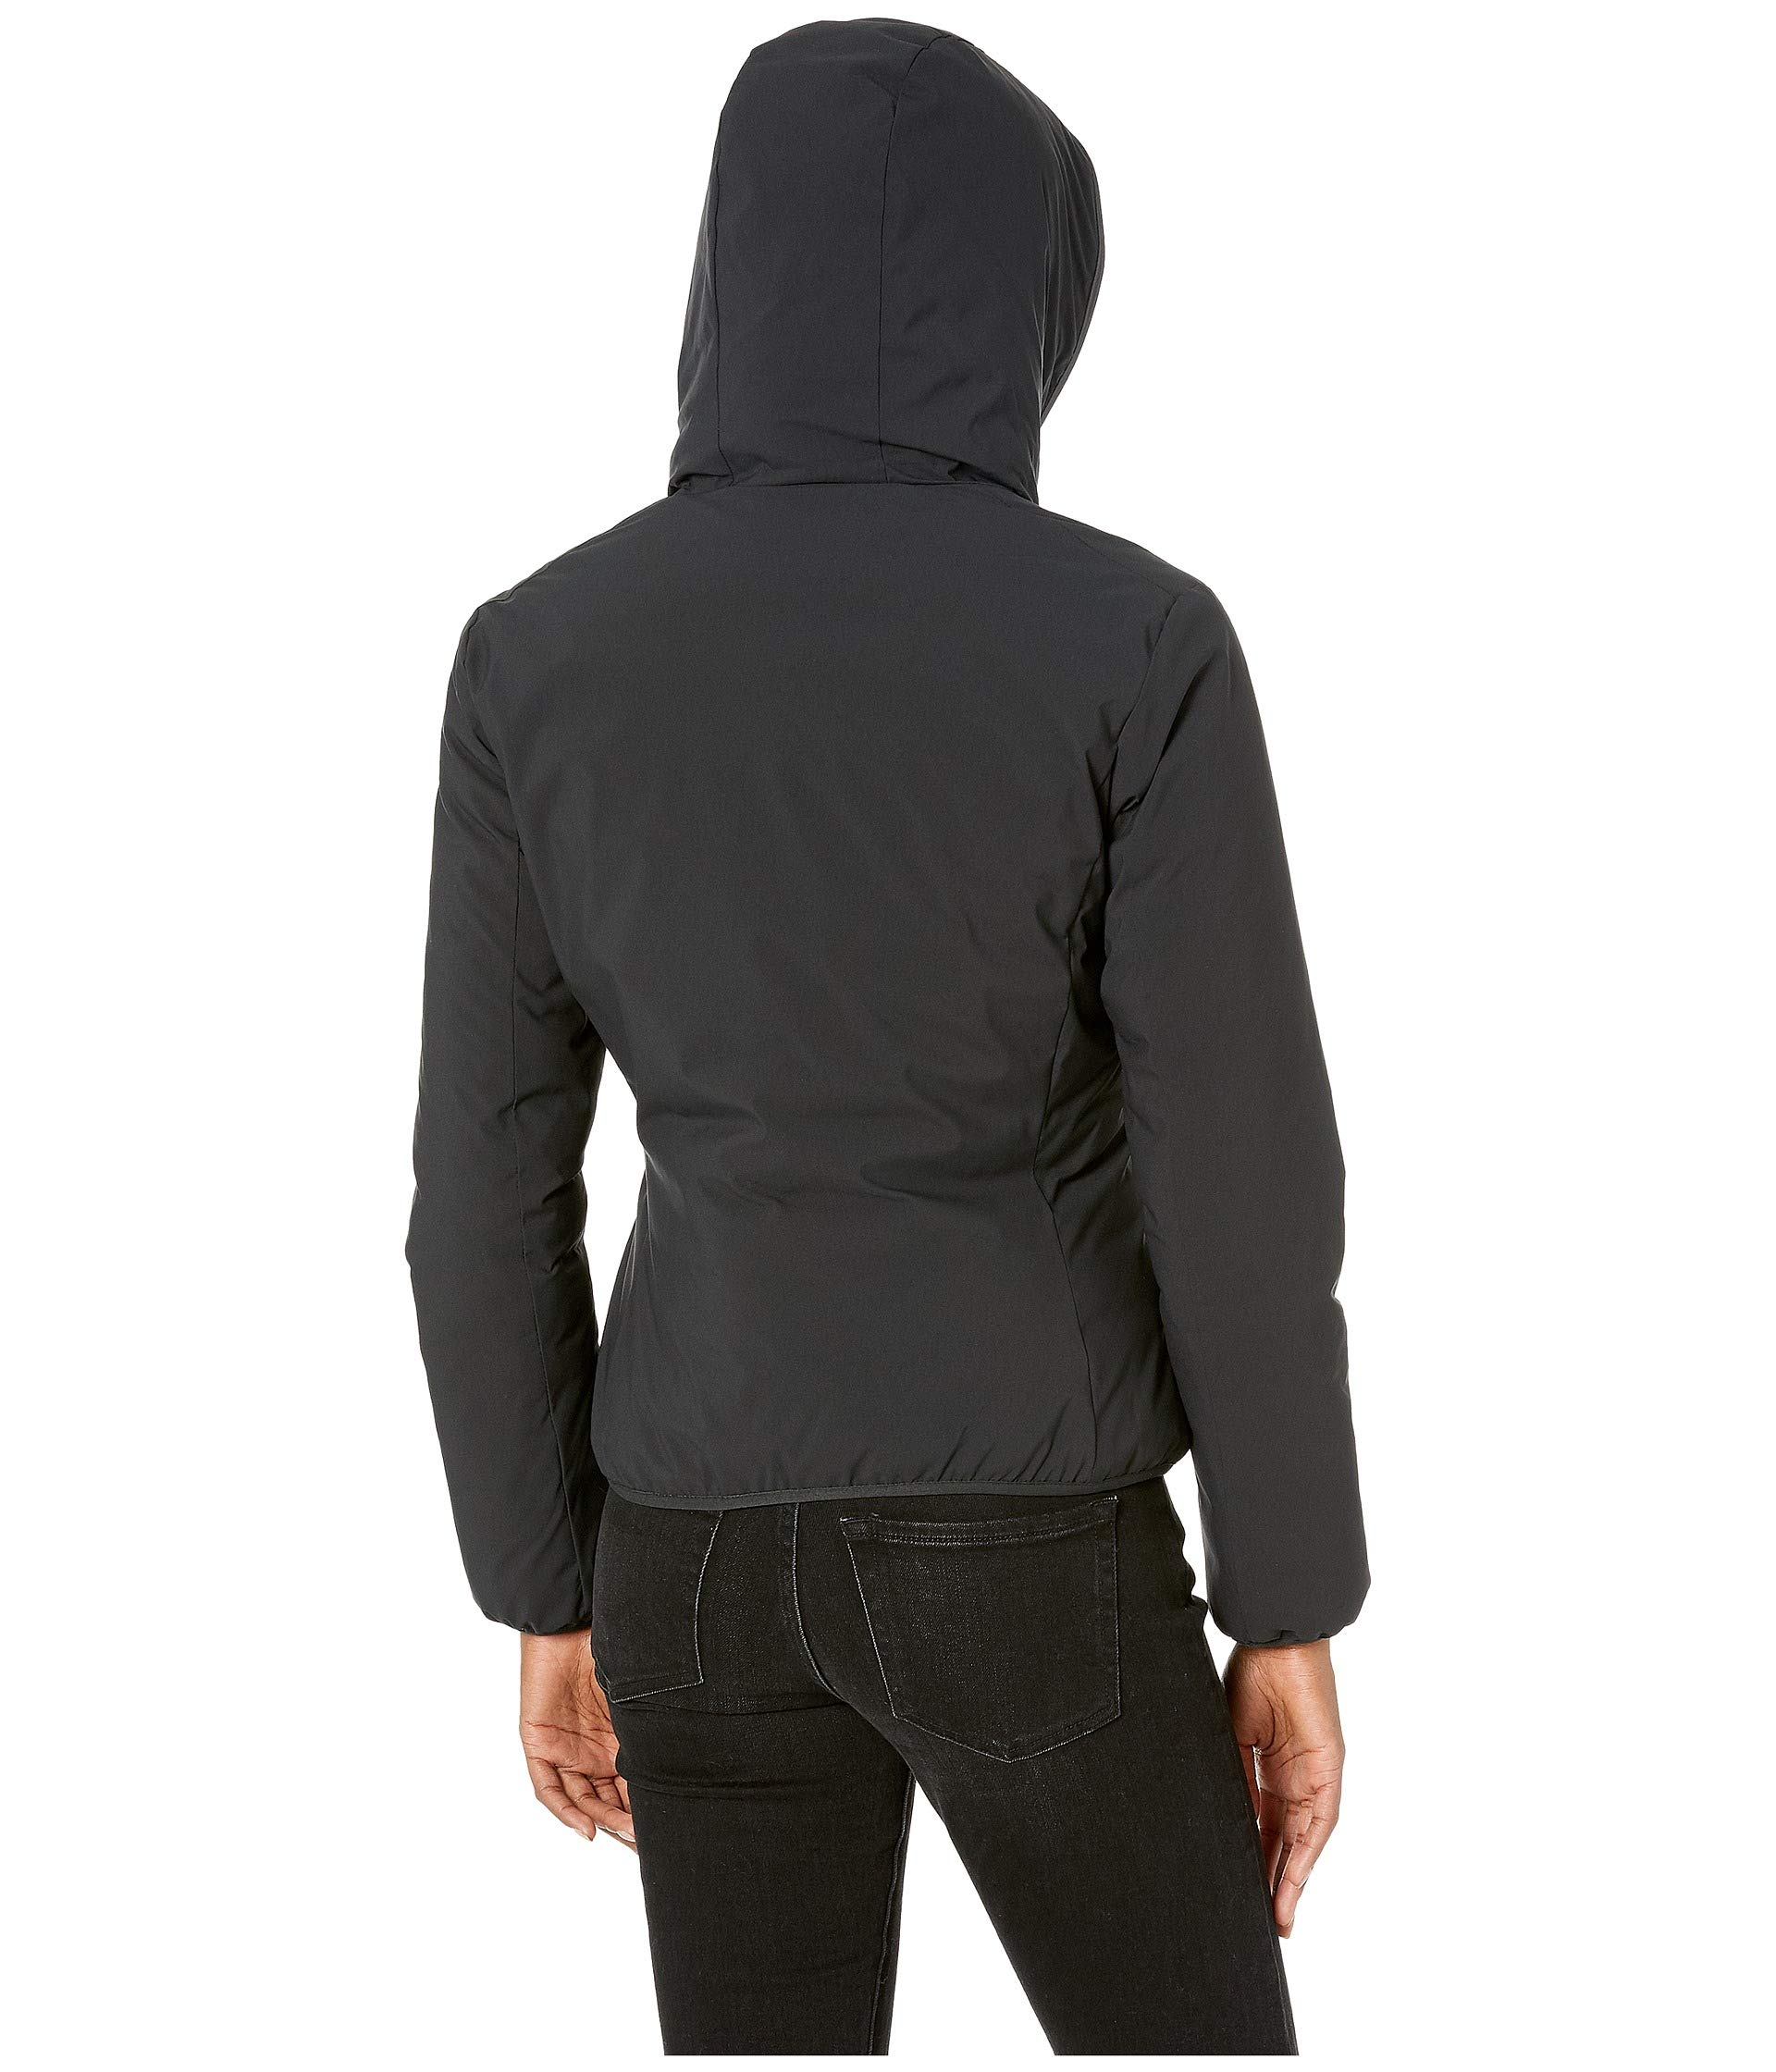 Hooded Duck Black Jacket Short The Reversible Save 7qUtcafxWw